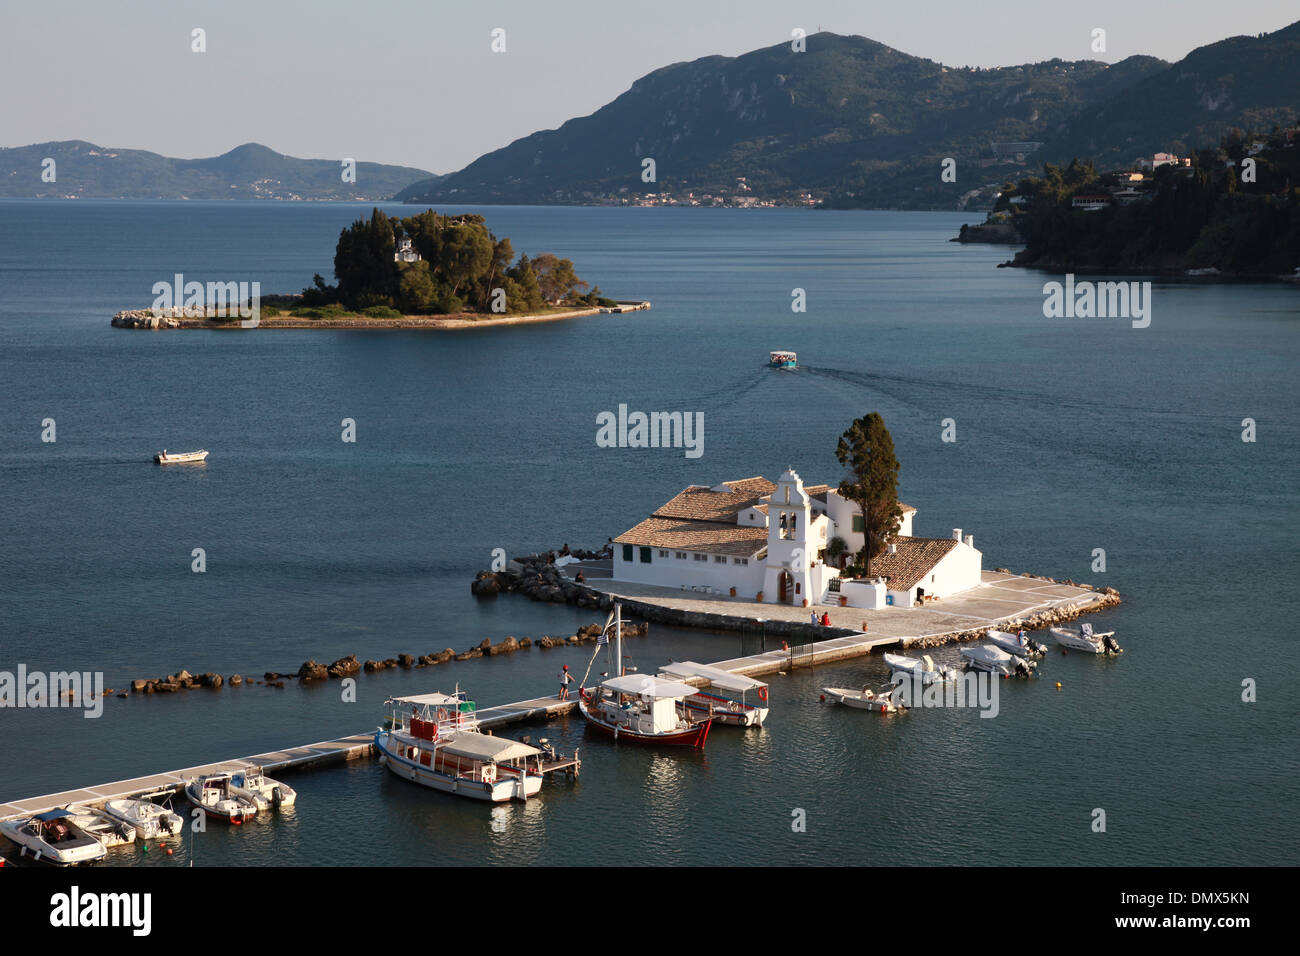 View over the Vlacheraina monastery and mouse island on Corfu in Greece before sunset. - Stock Image